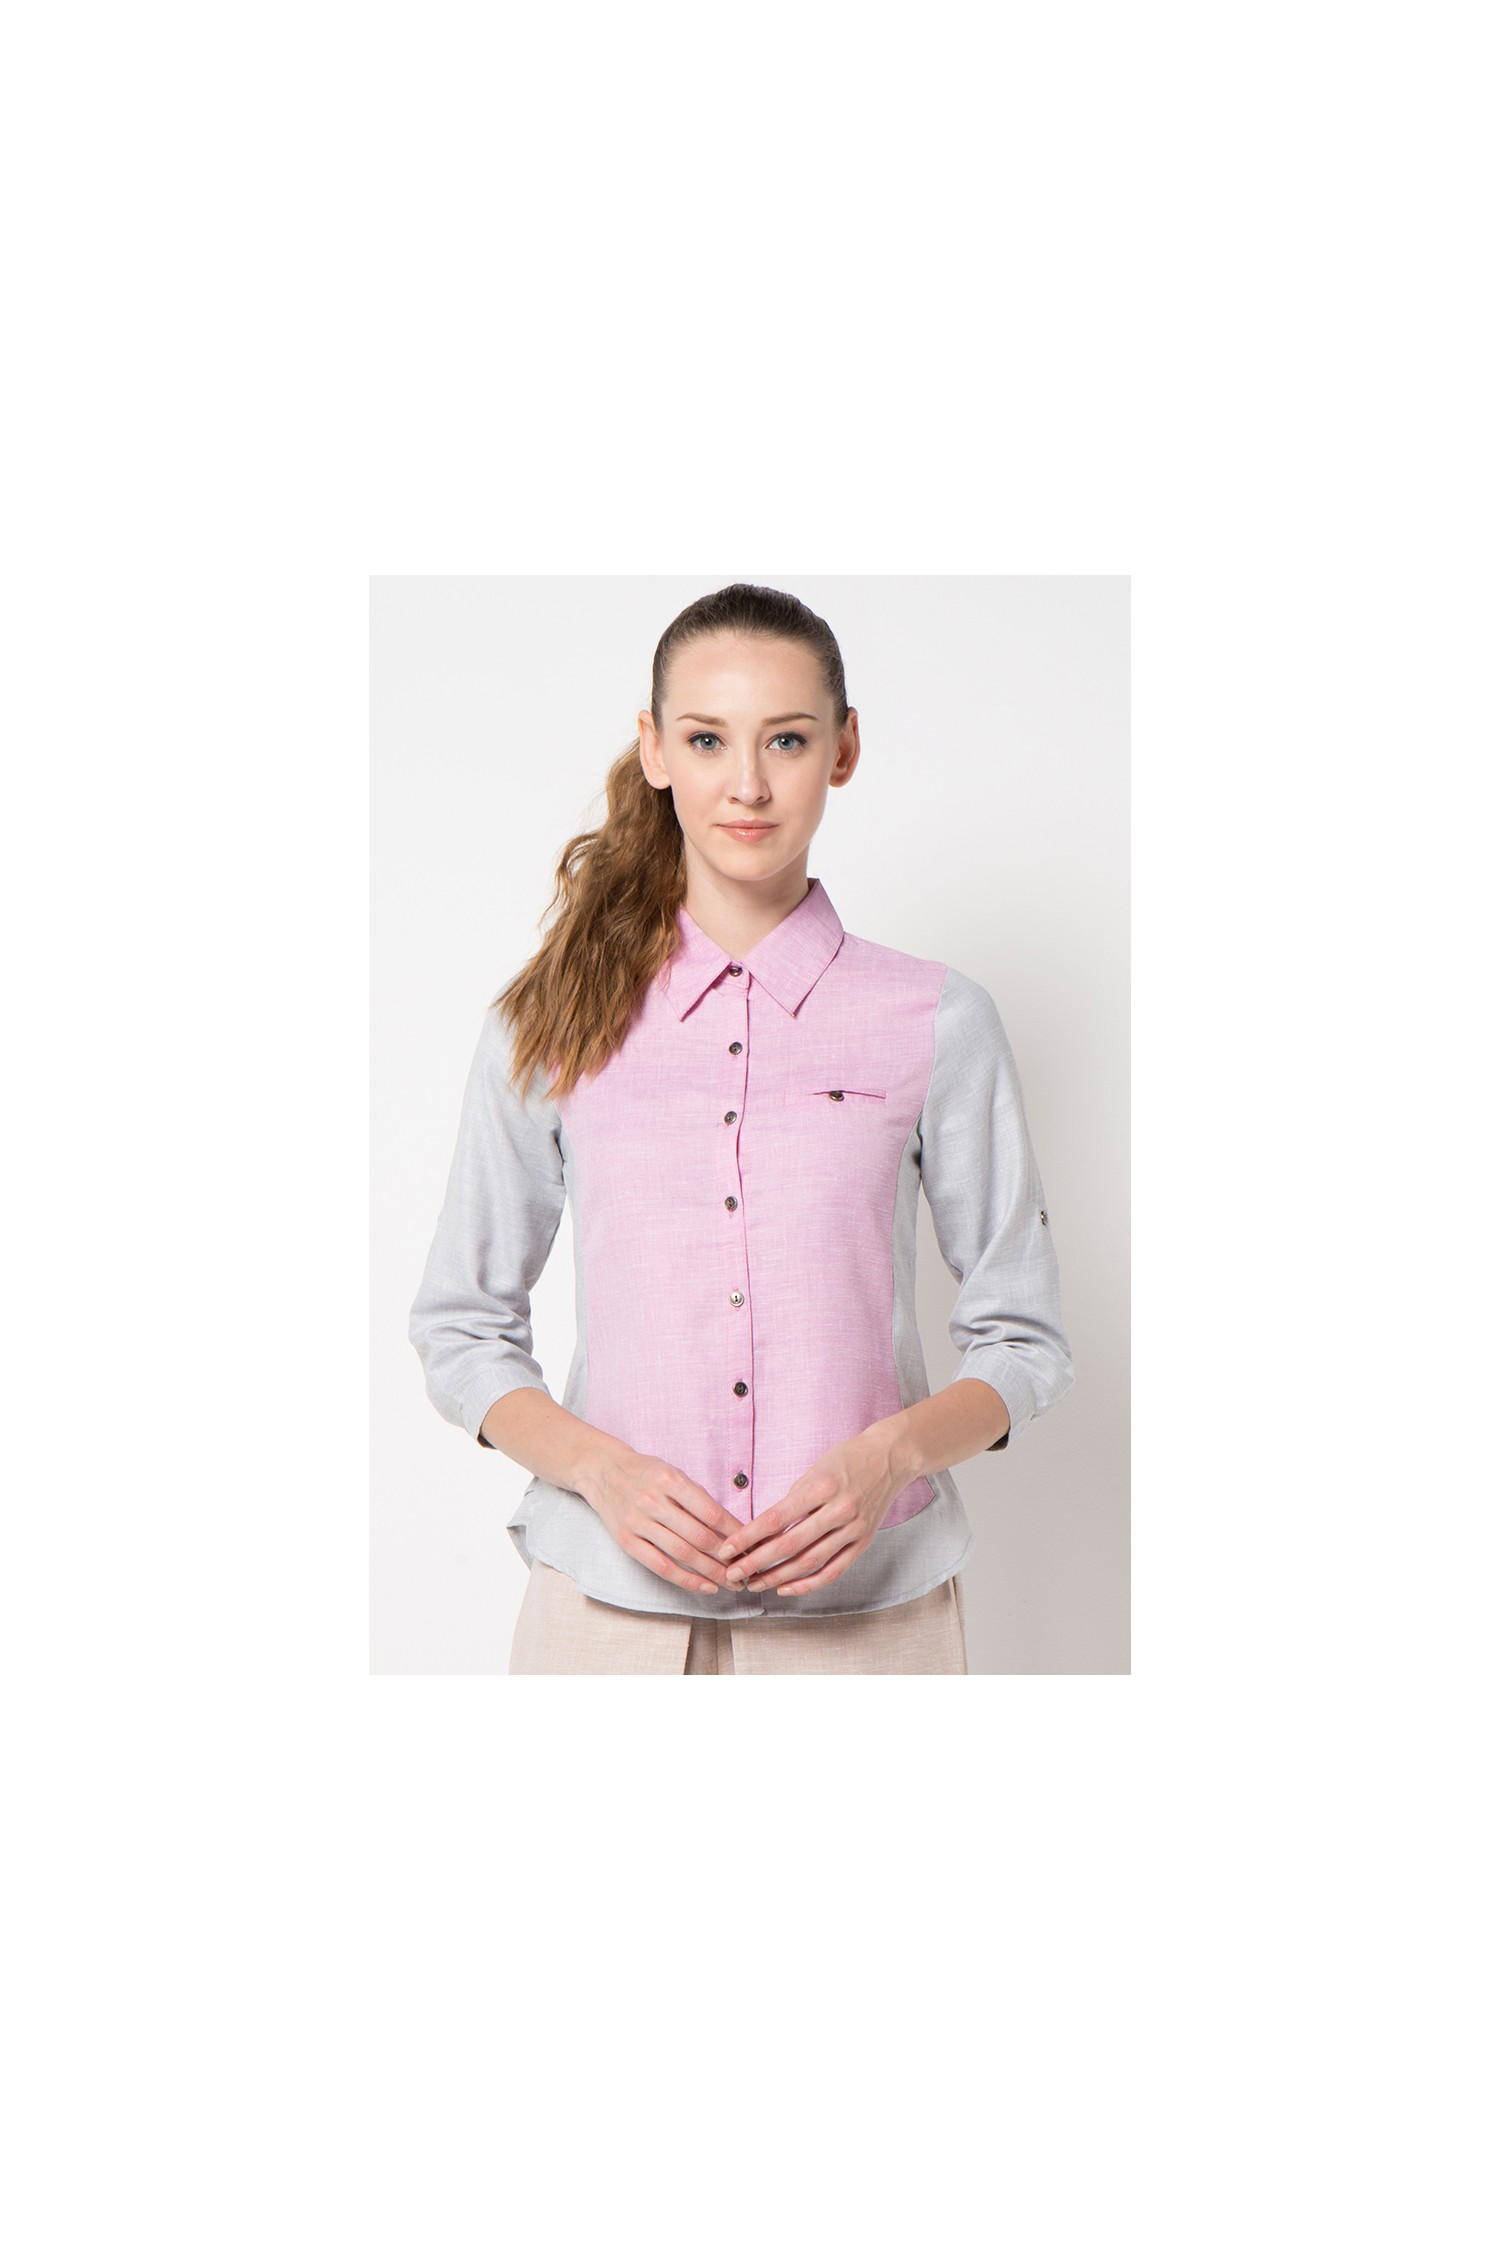 4096c3cf2a5c61 Tea Blouse in Pink and Grey - So phis tiX